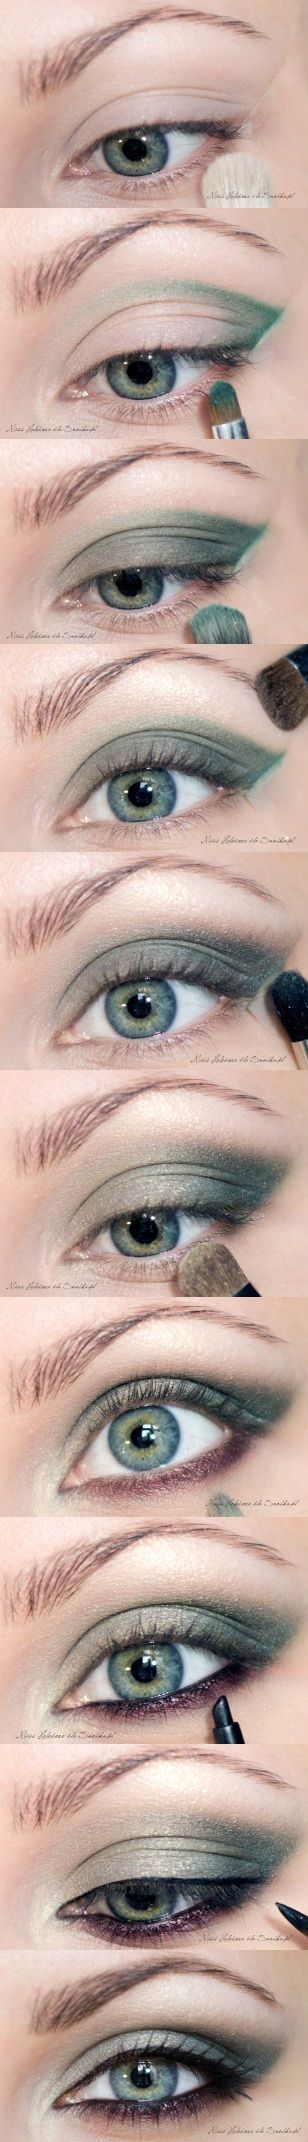 Emerald Smokey Eyes - Eye Make Up Tutoria                                                                                                                                                      More